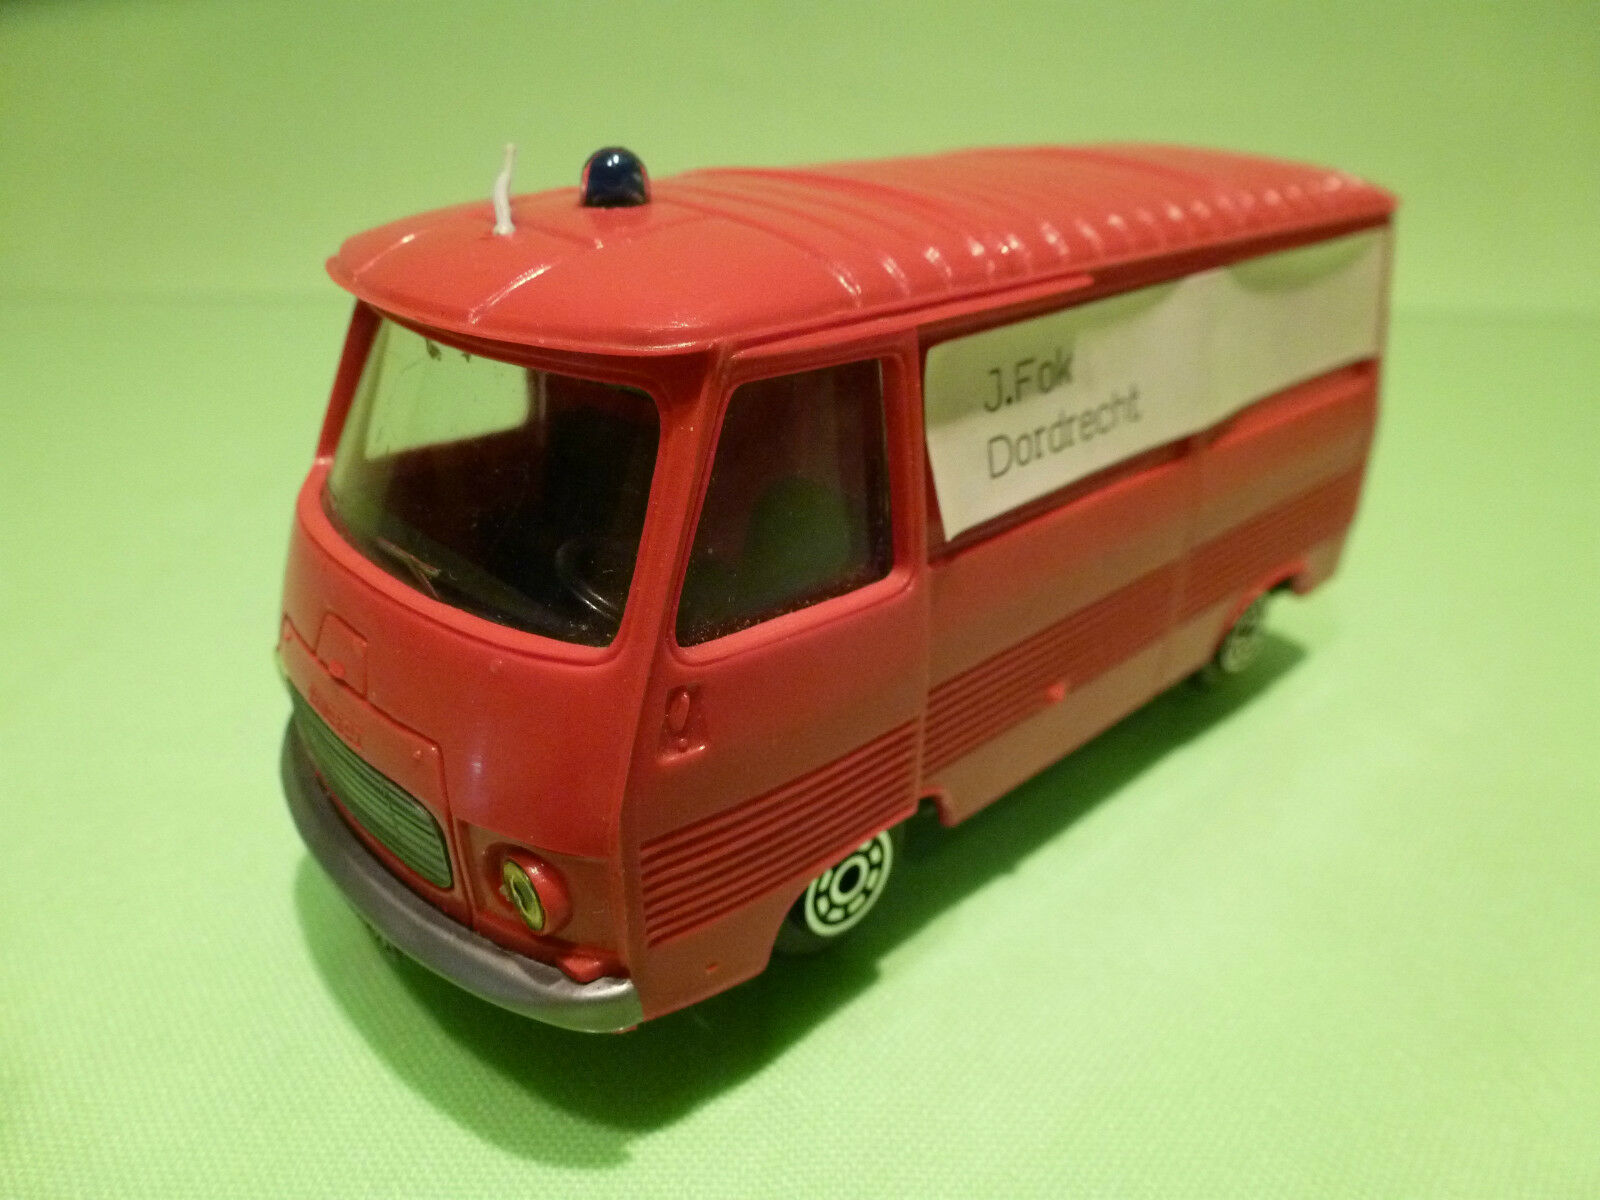 a prezzi accessibili NOREV PEUGEOT J7 - WERBE-modelloL - rosso rosso rosso  1 43 - RARE SELTEN - GOOD CONDITION  colorways incredibili